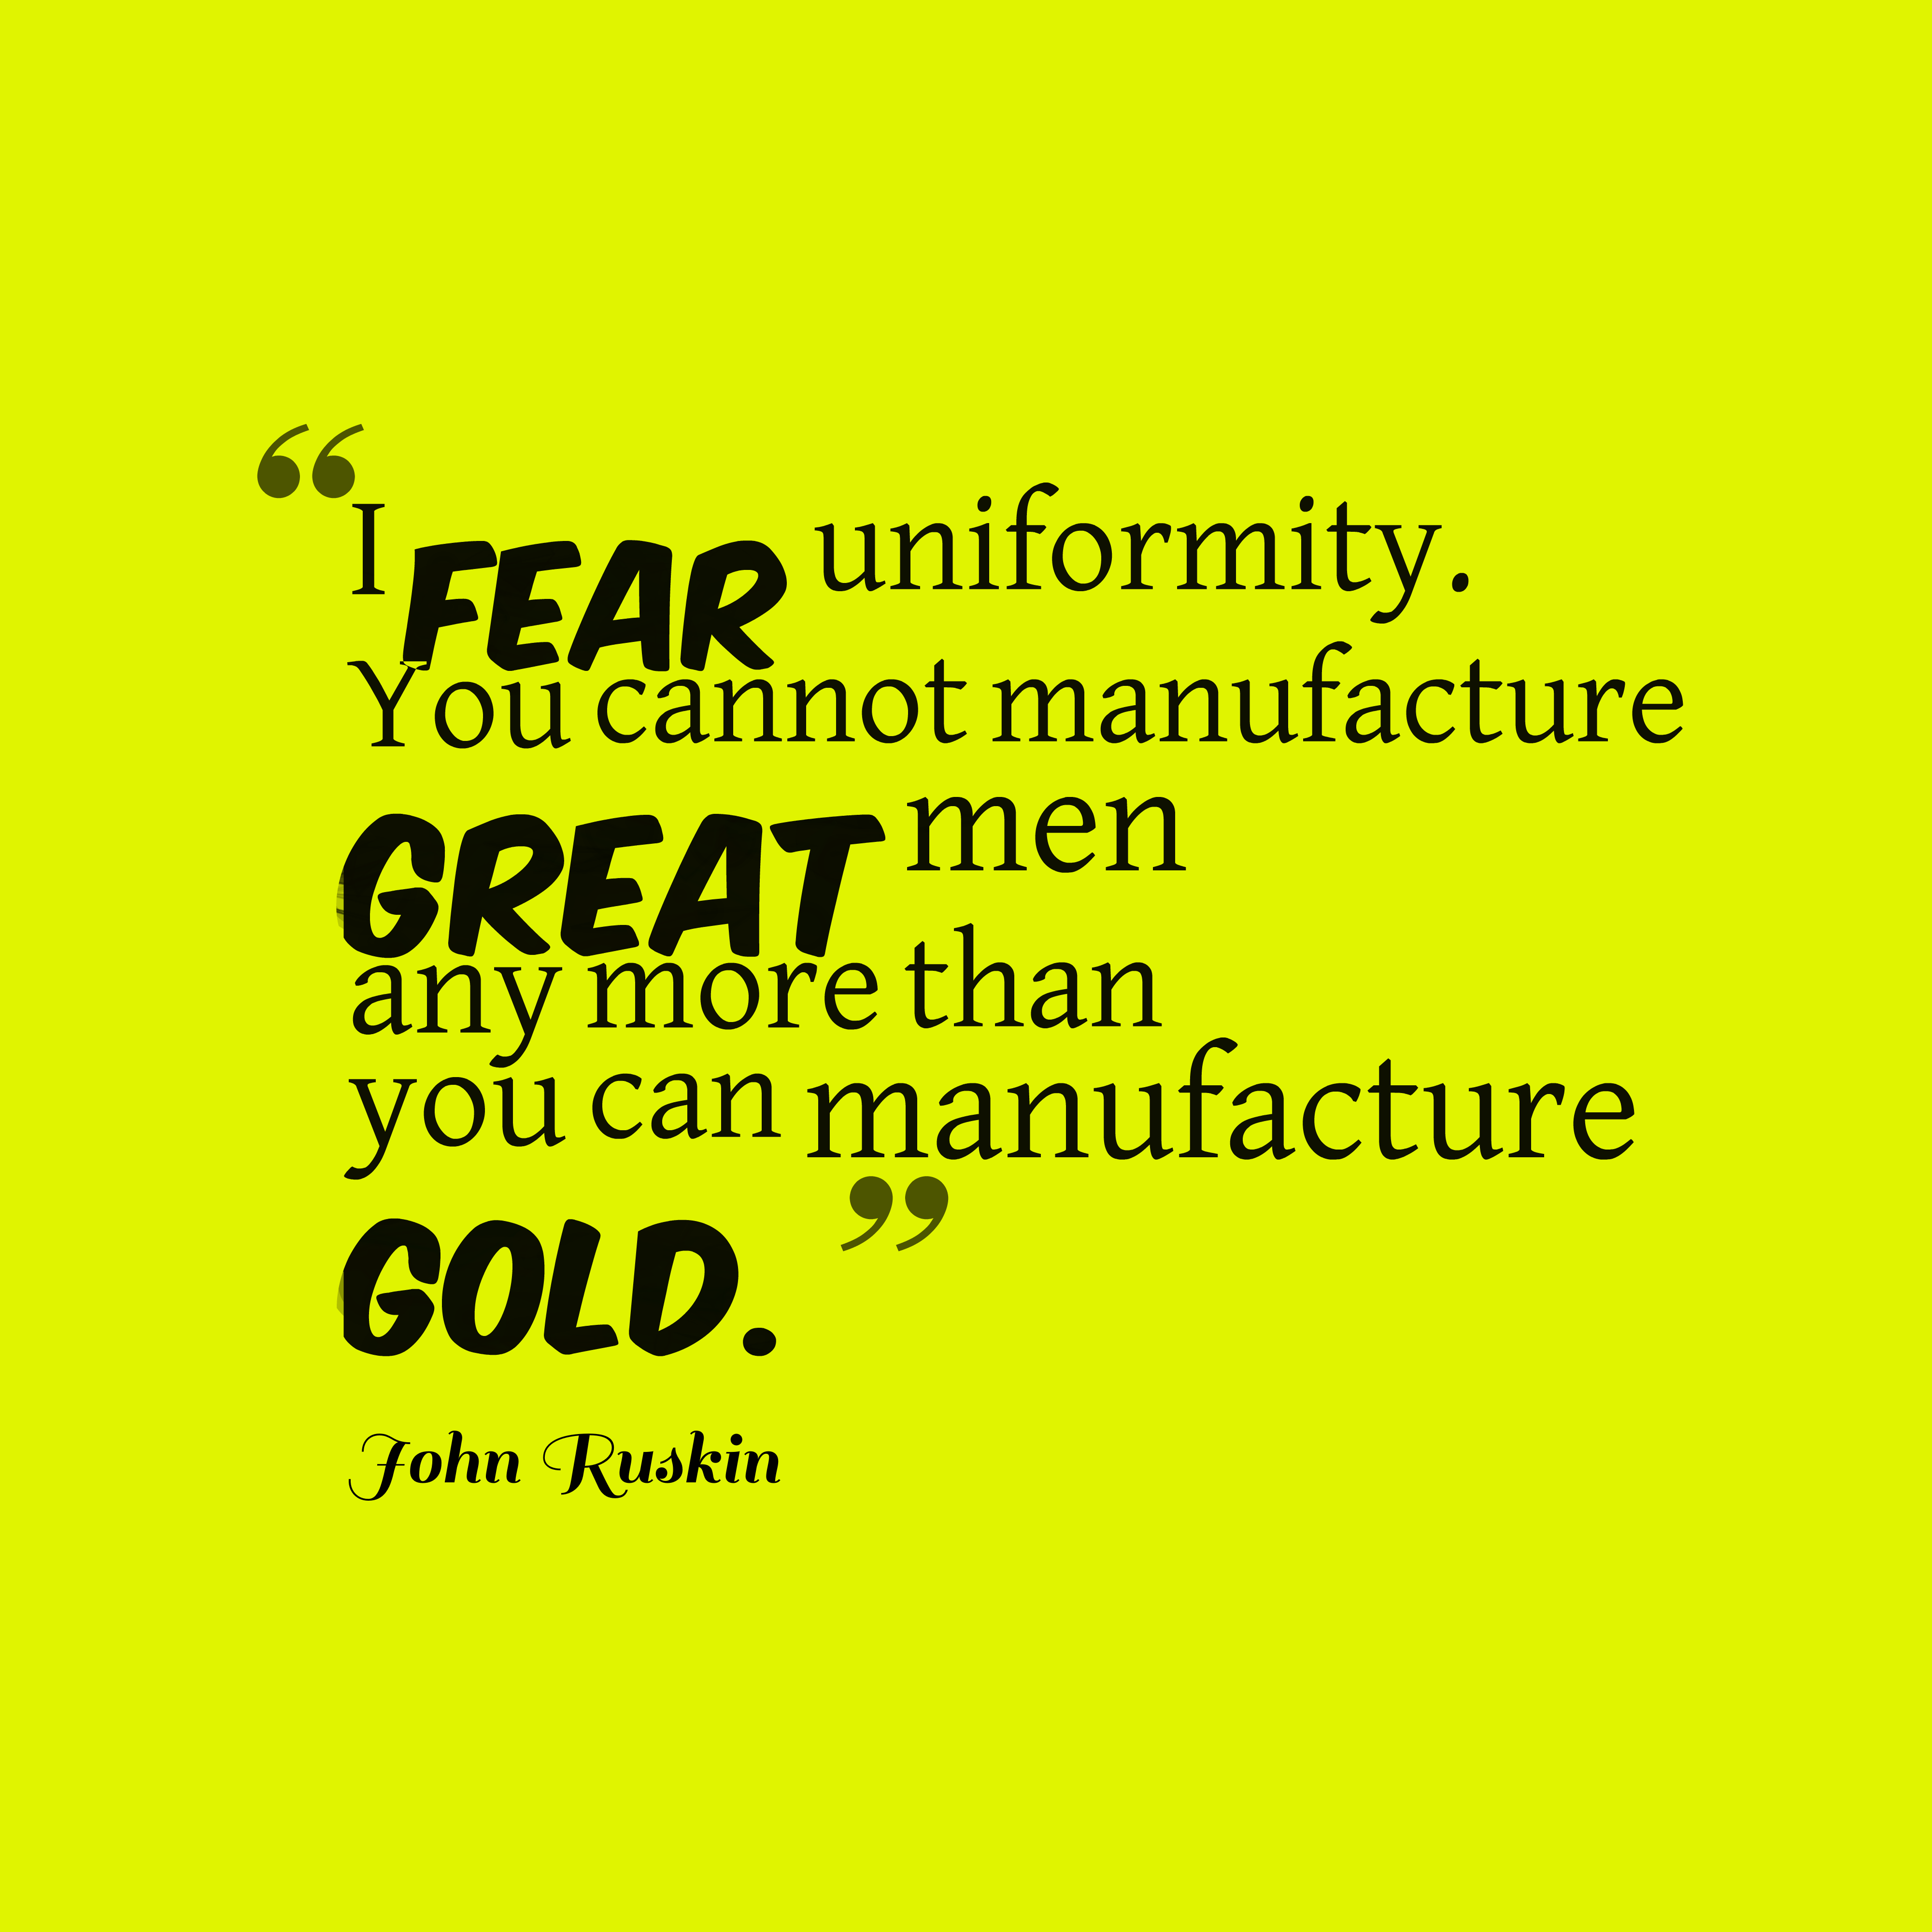 Quotes image of I fear uniformity. You cannot manufacture great men any more than you can manufacture gold.